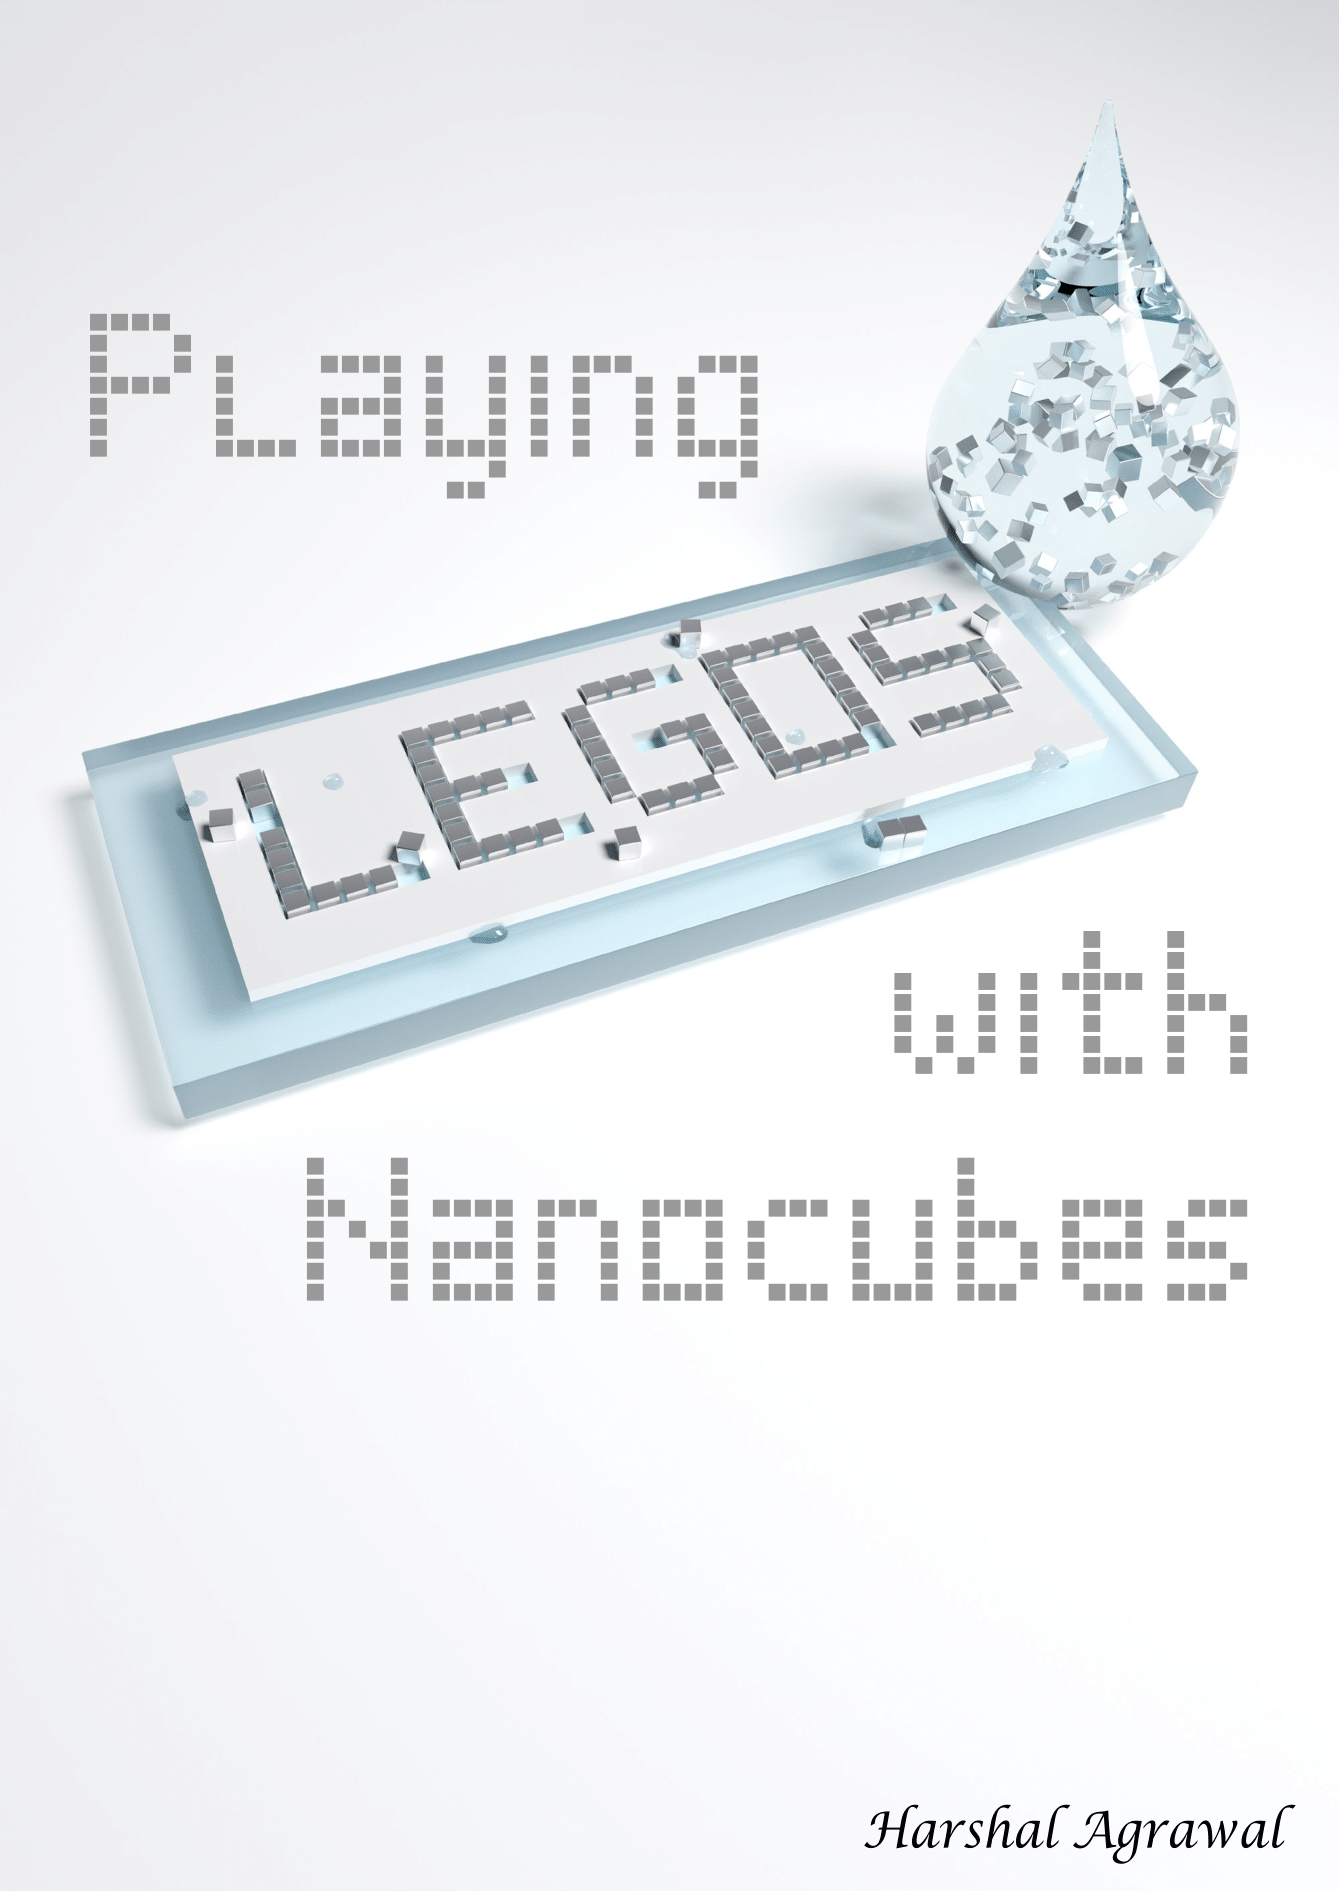 Playing Legos with Nanocubes